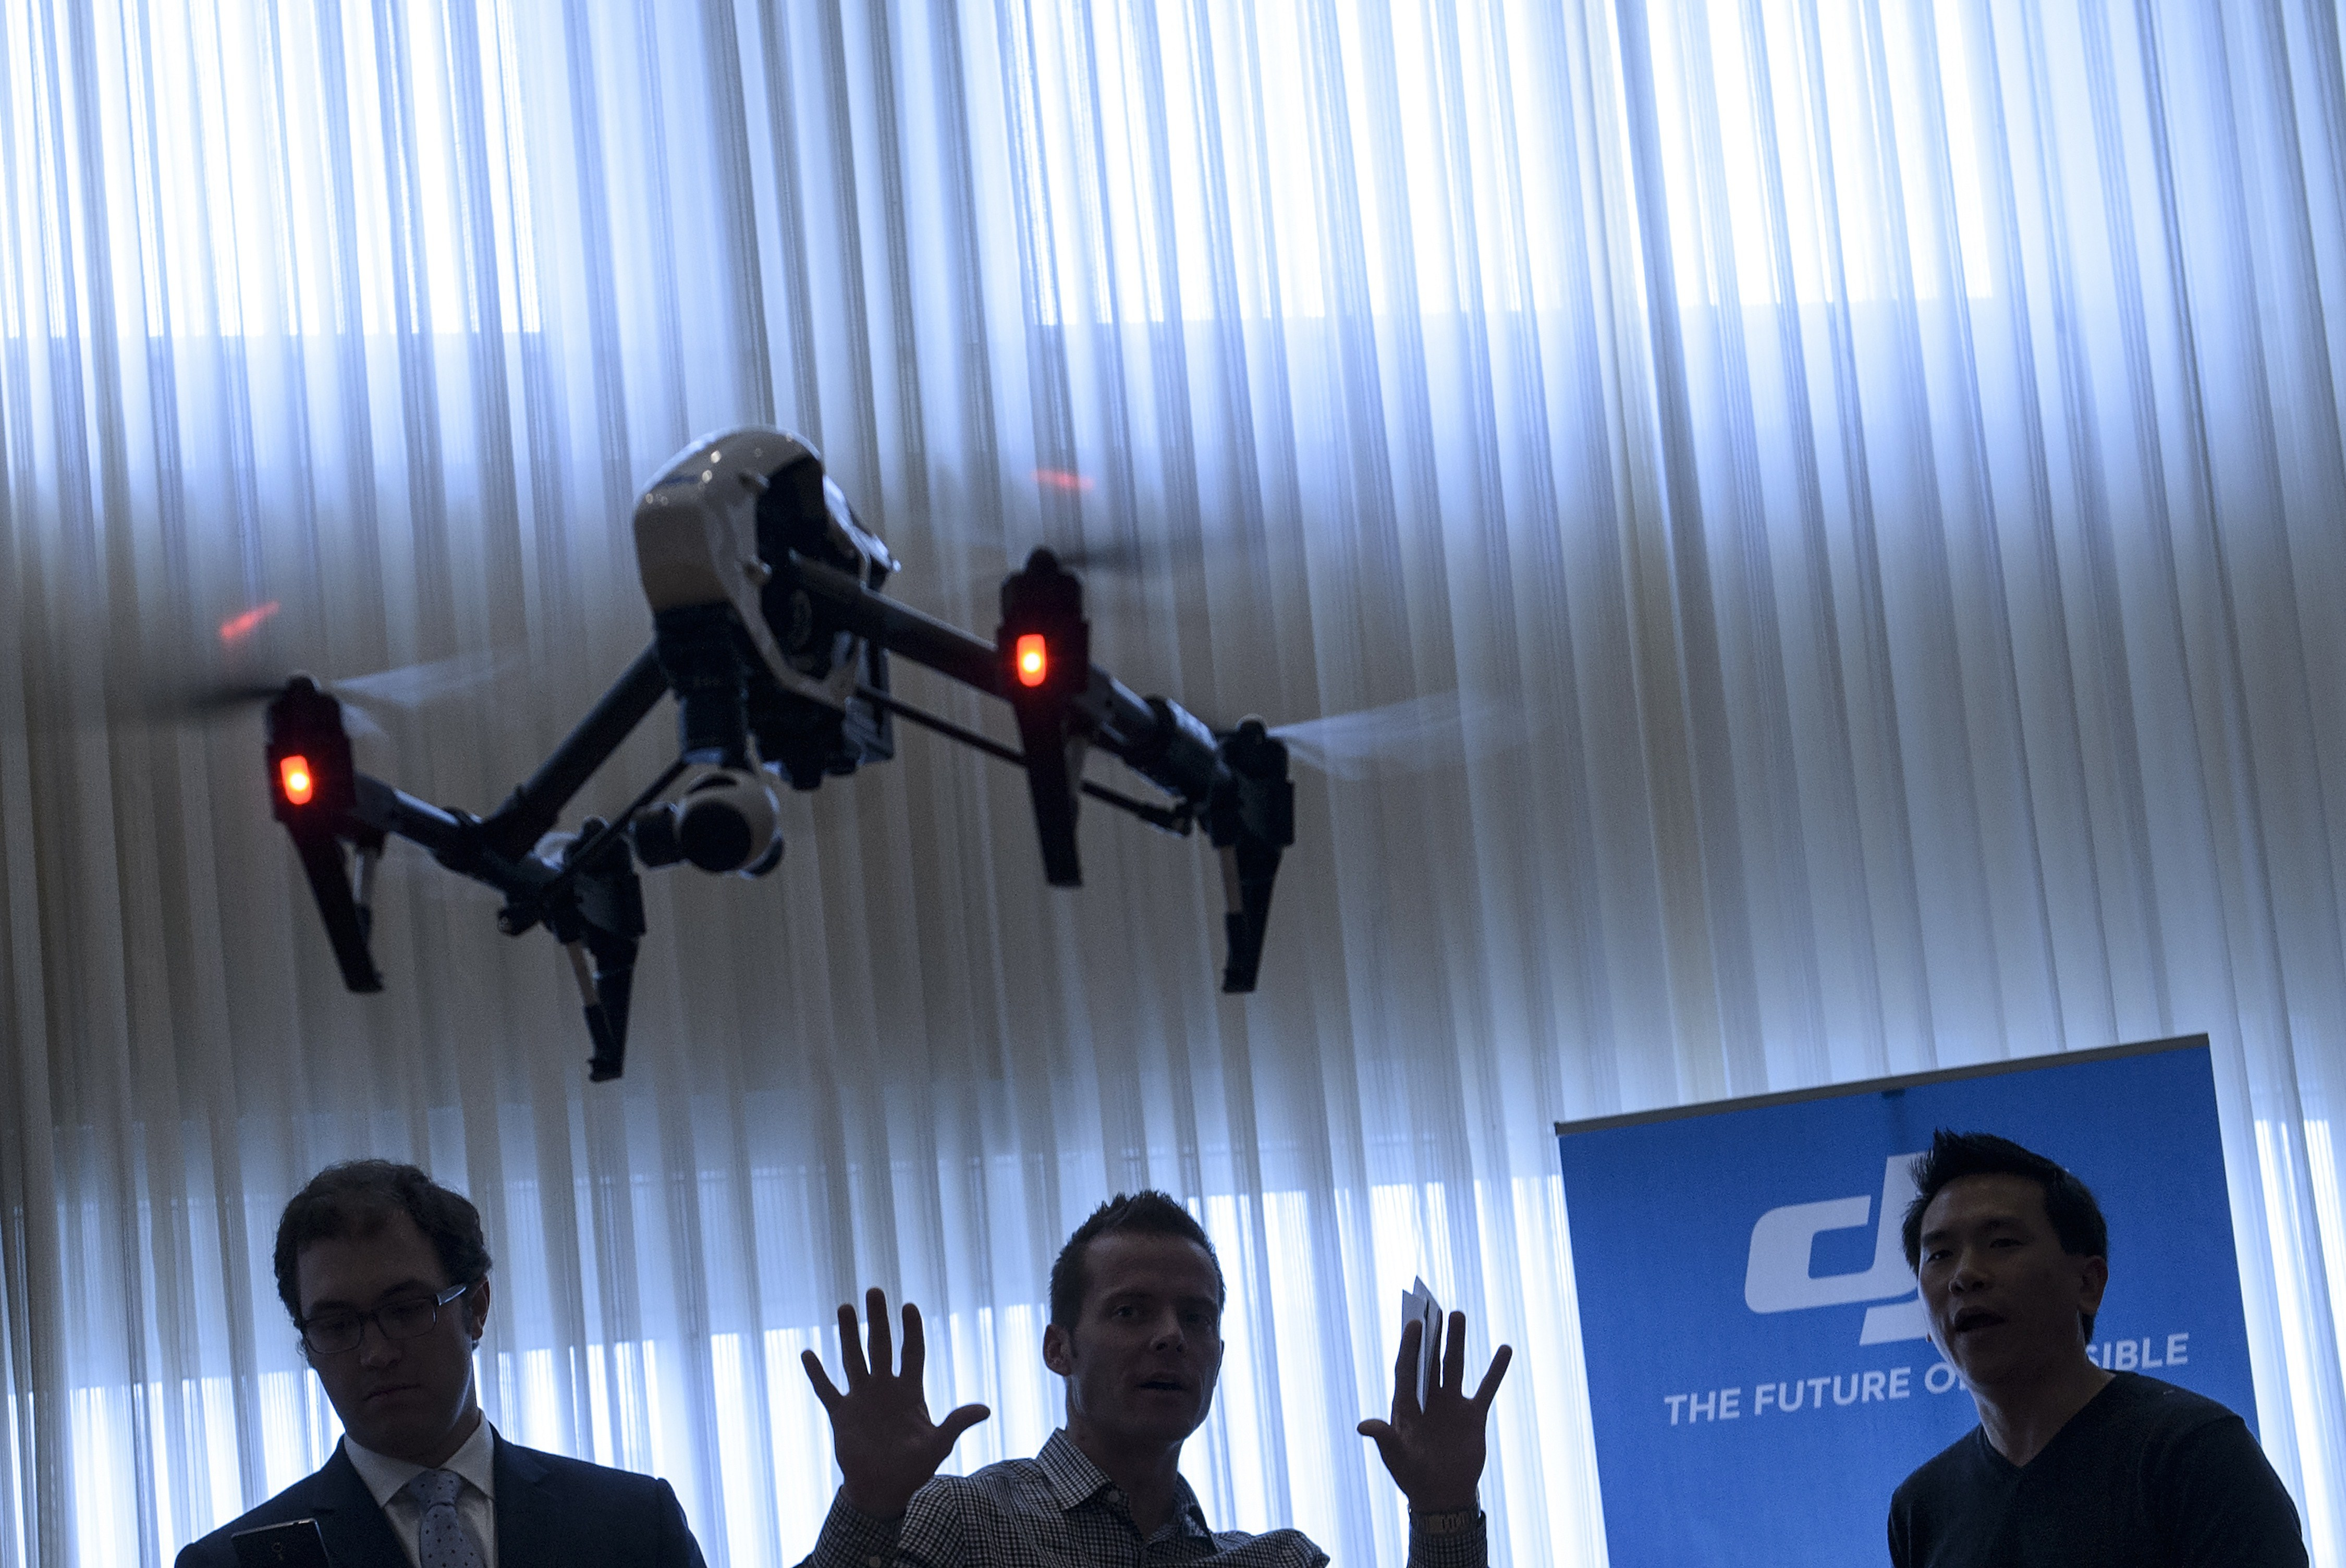 Staff from aerial imaging company DJI, demonstrate a remote control aircraft during a press conference by the Small UAV Coalition January 20, 2015 in Washington, DC.